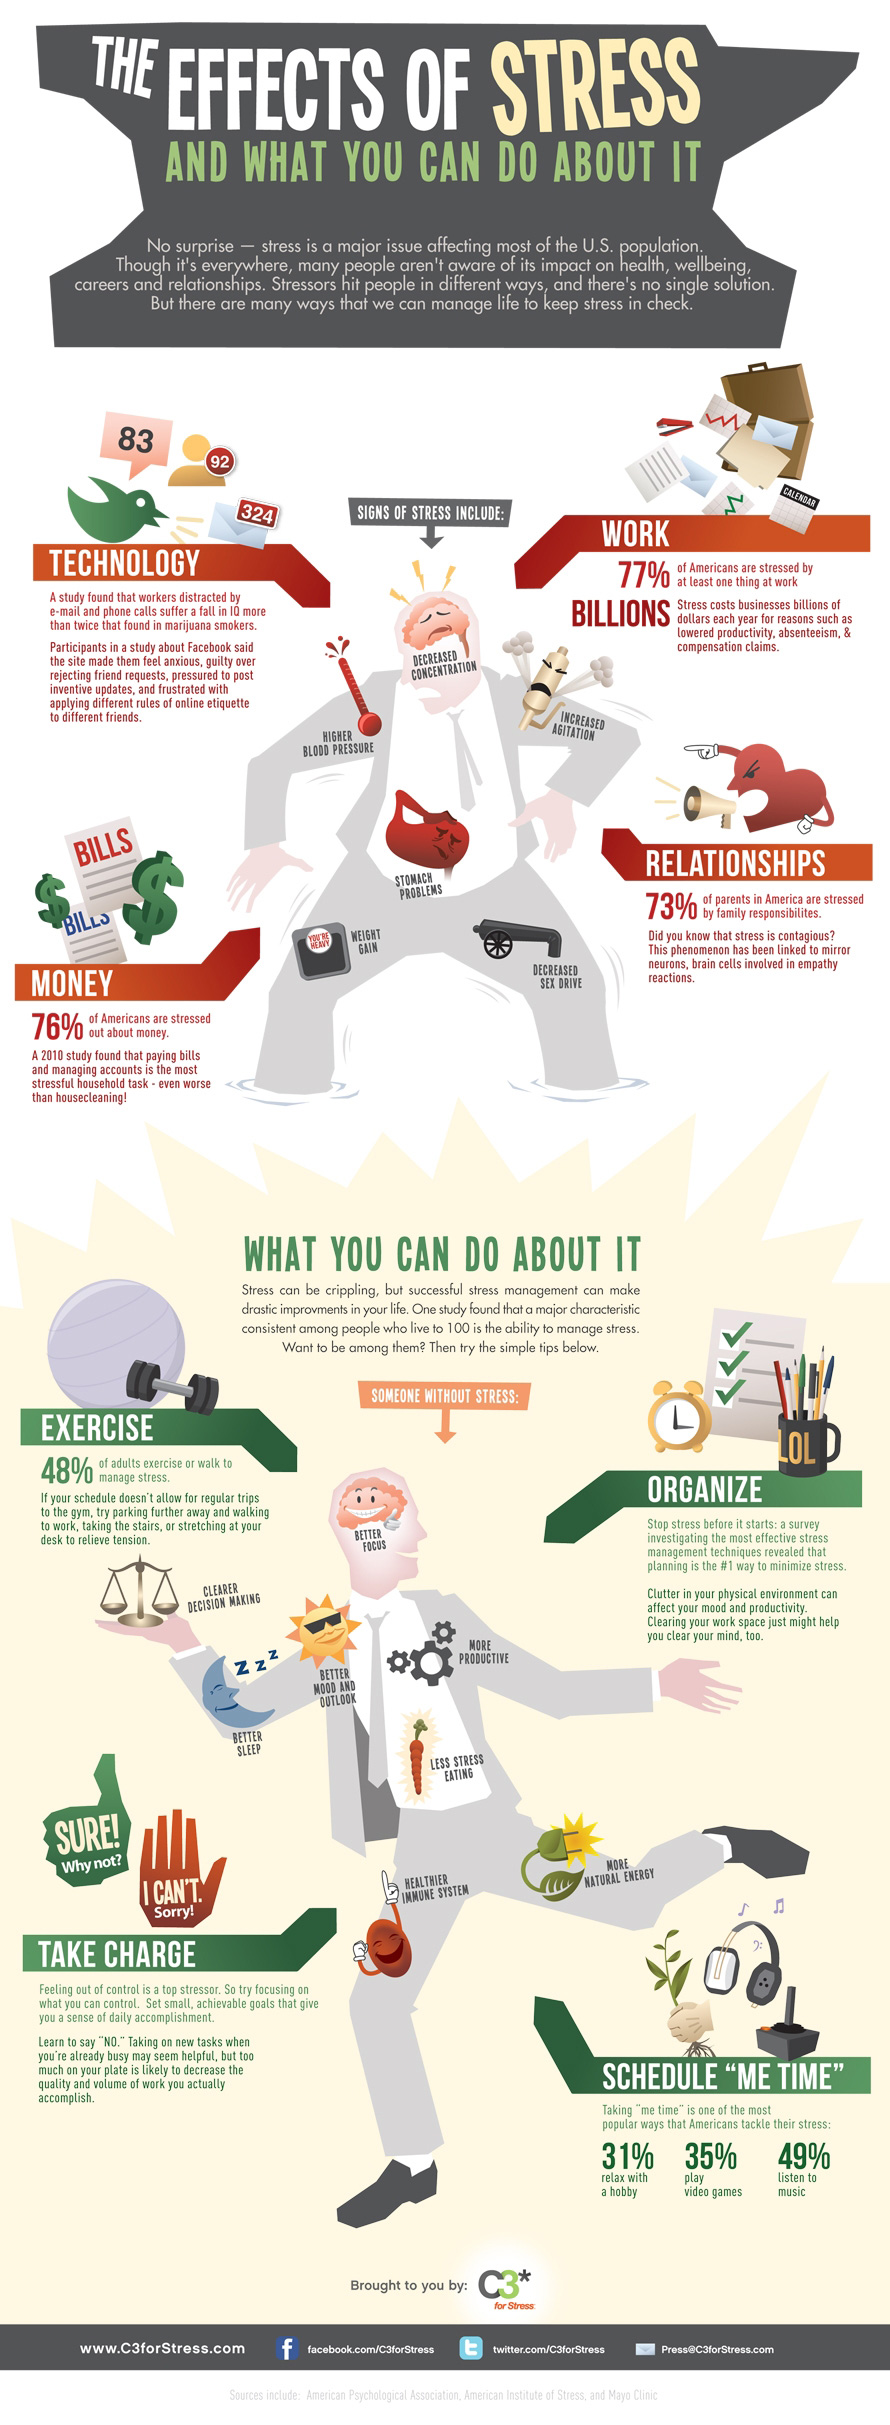 4 Tips To Get Rid Of Stress Infographic